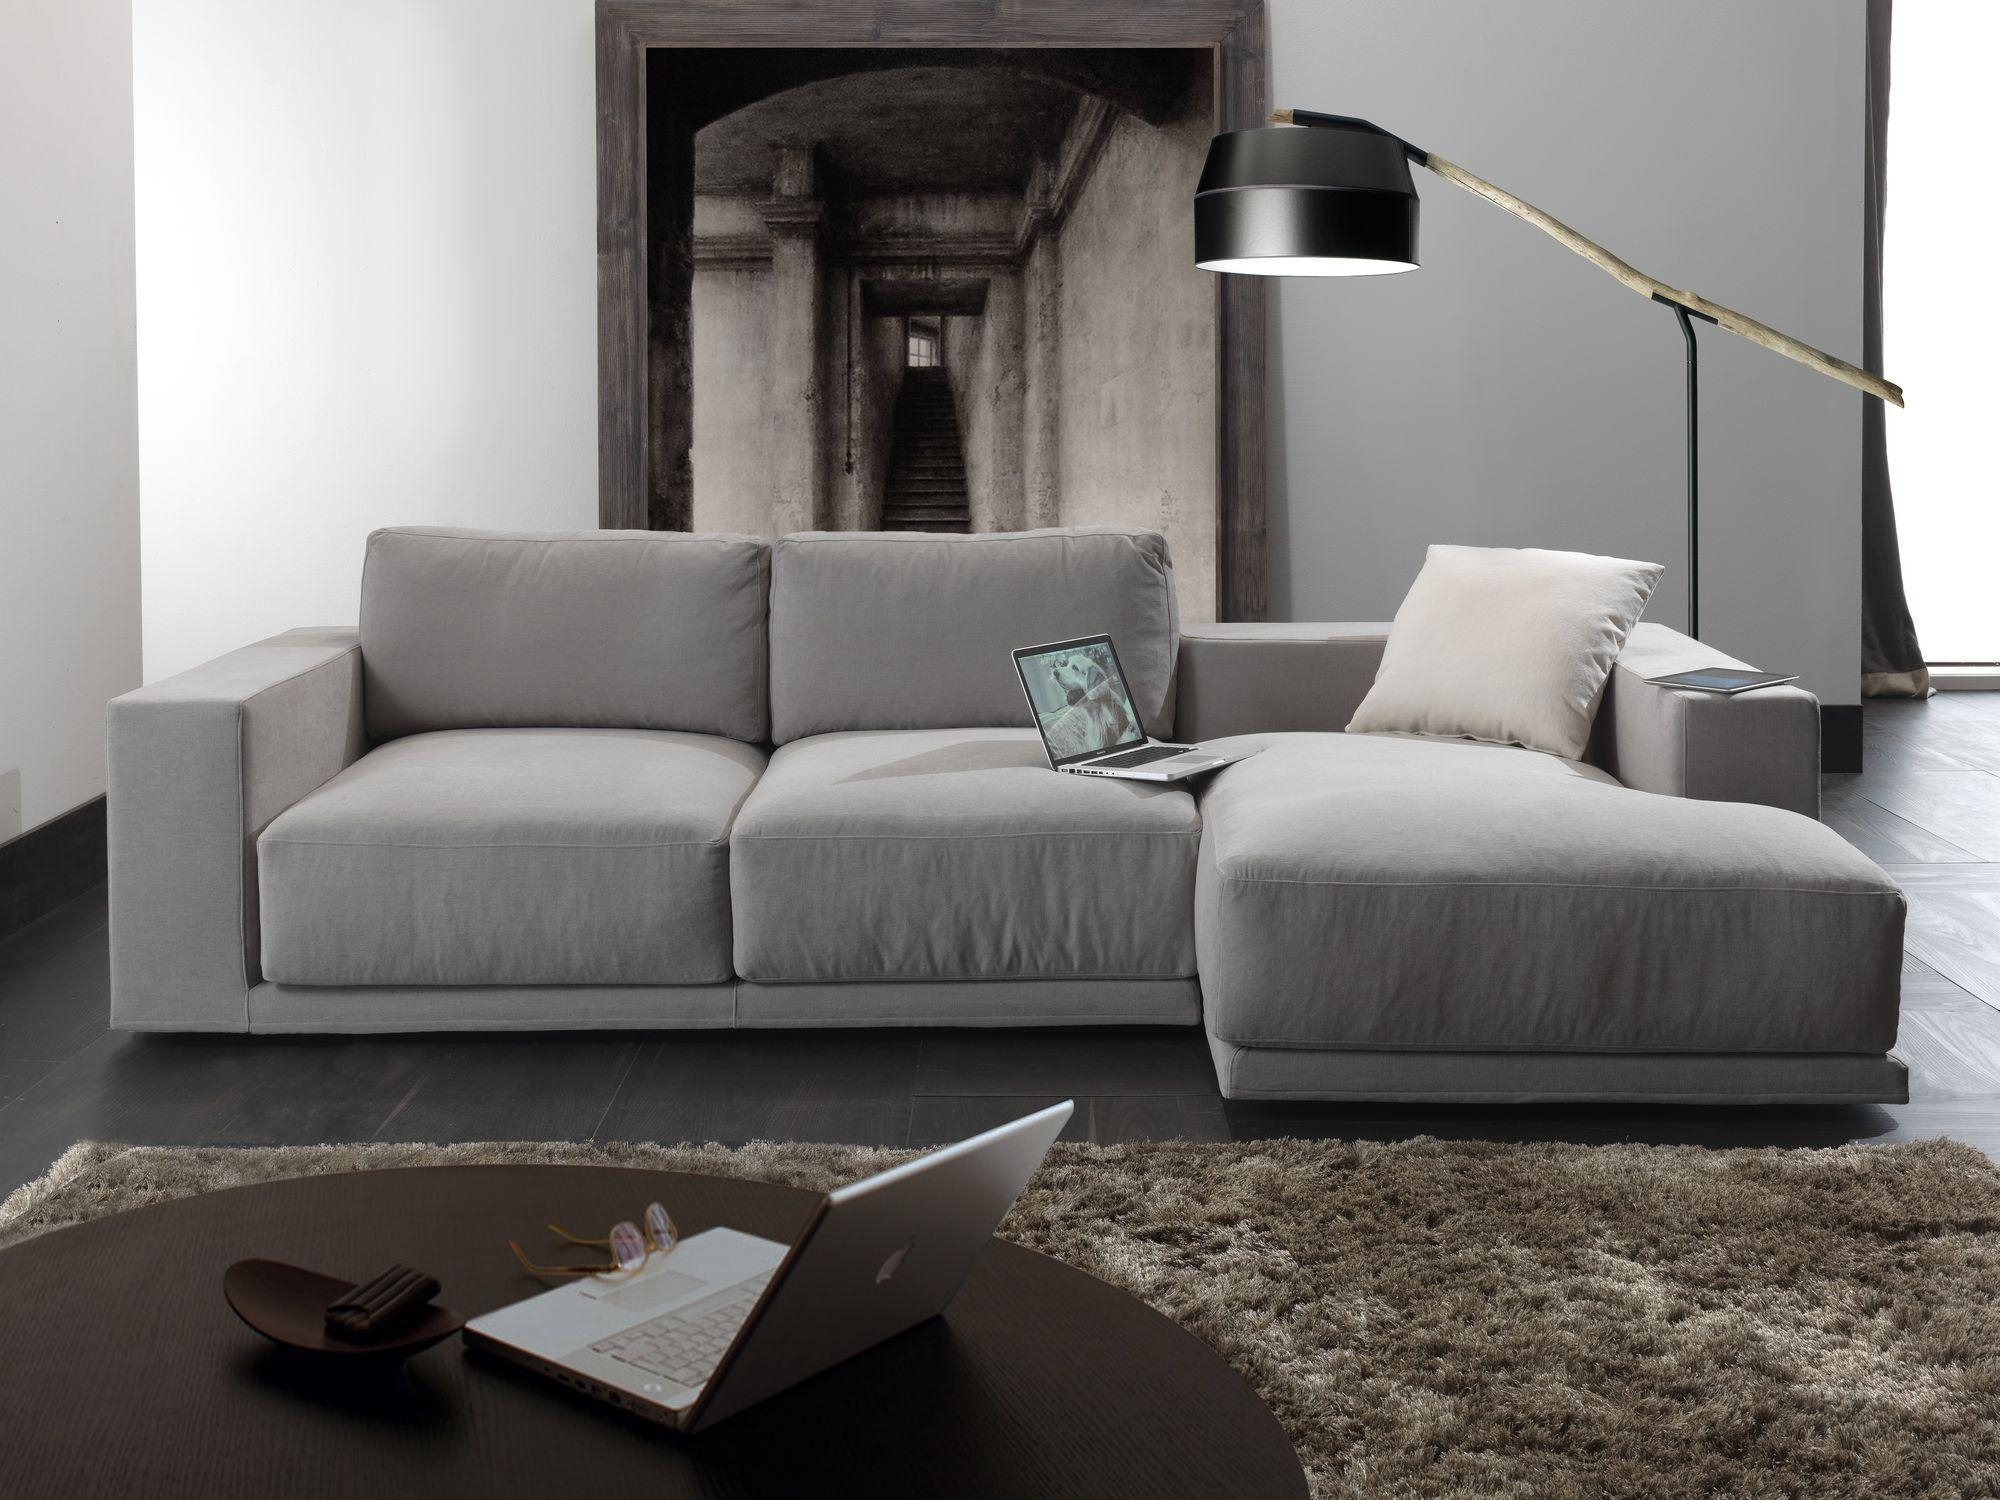 Modular Sofa / Contemporary / Fabric / 3 Seater – Relax Square Intended For Contemporary Fabric Sofas (View 5 of 20)